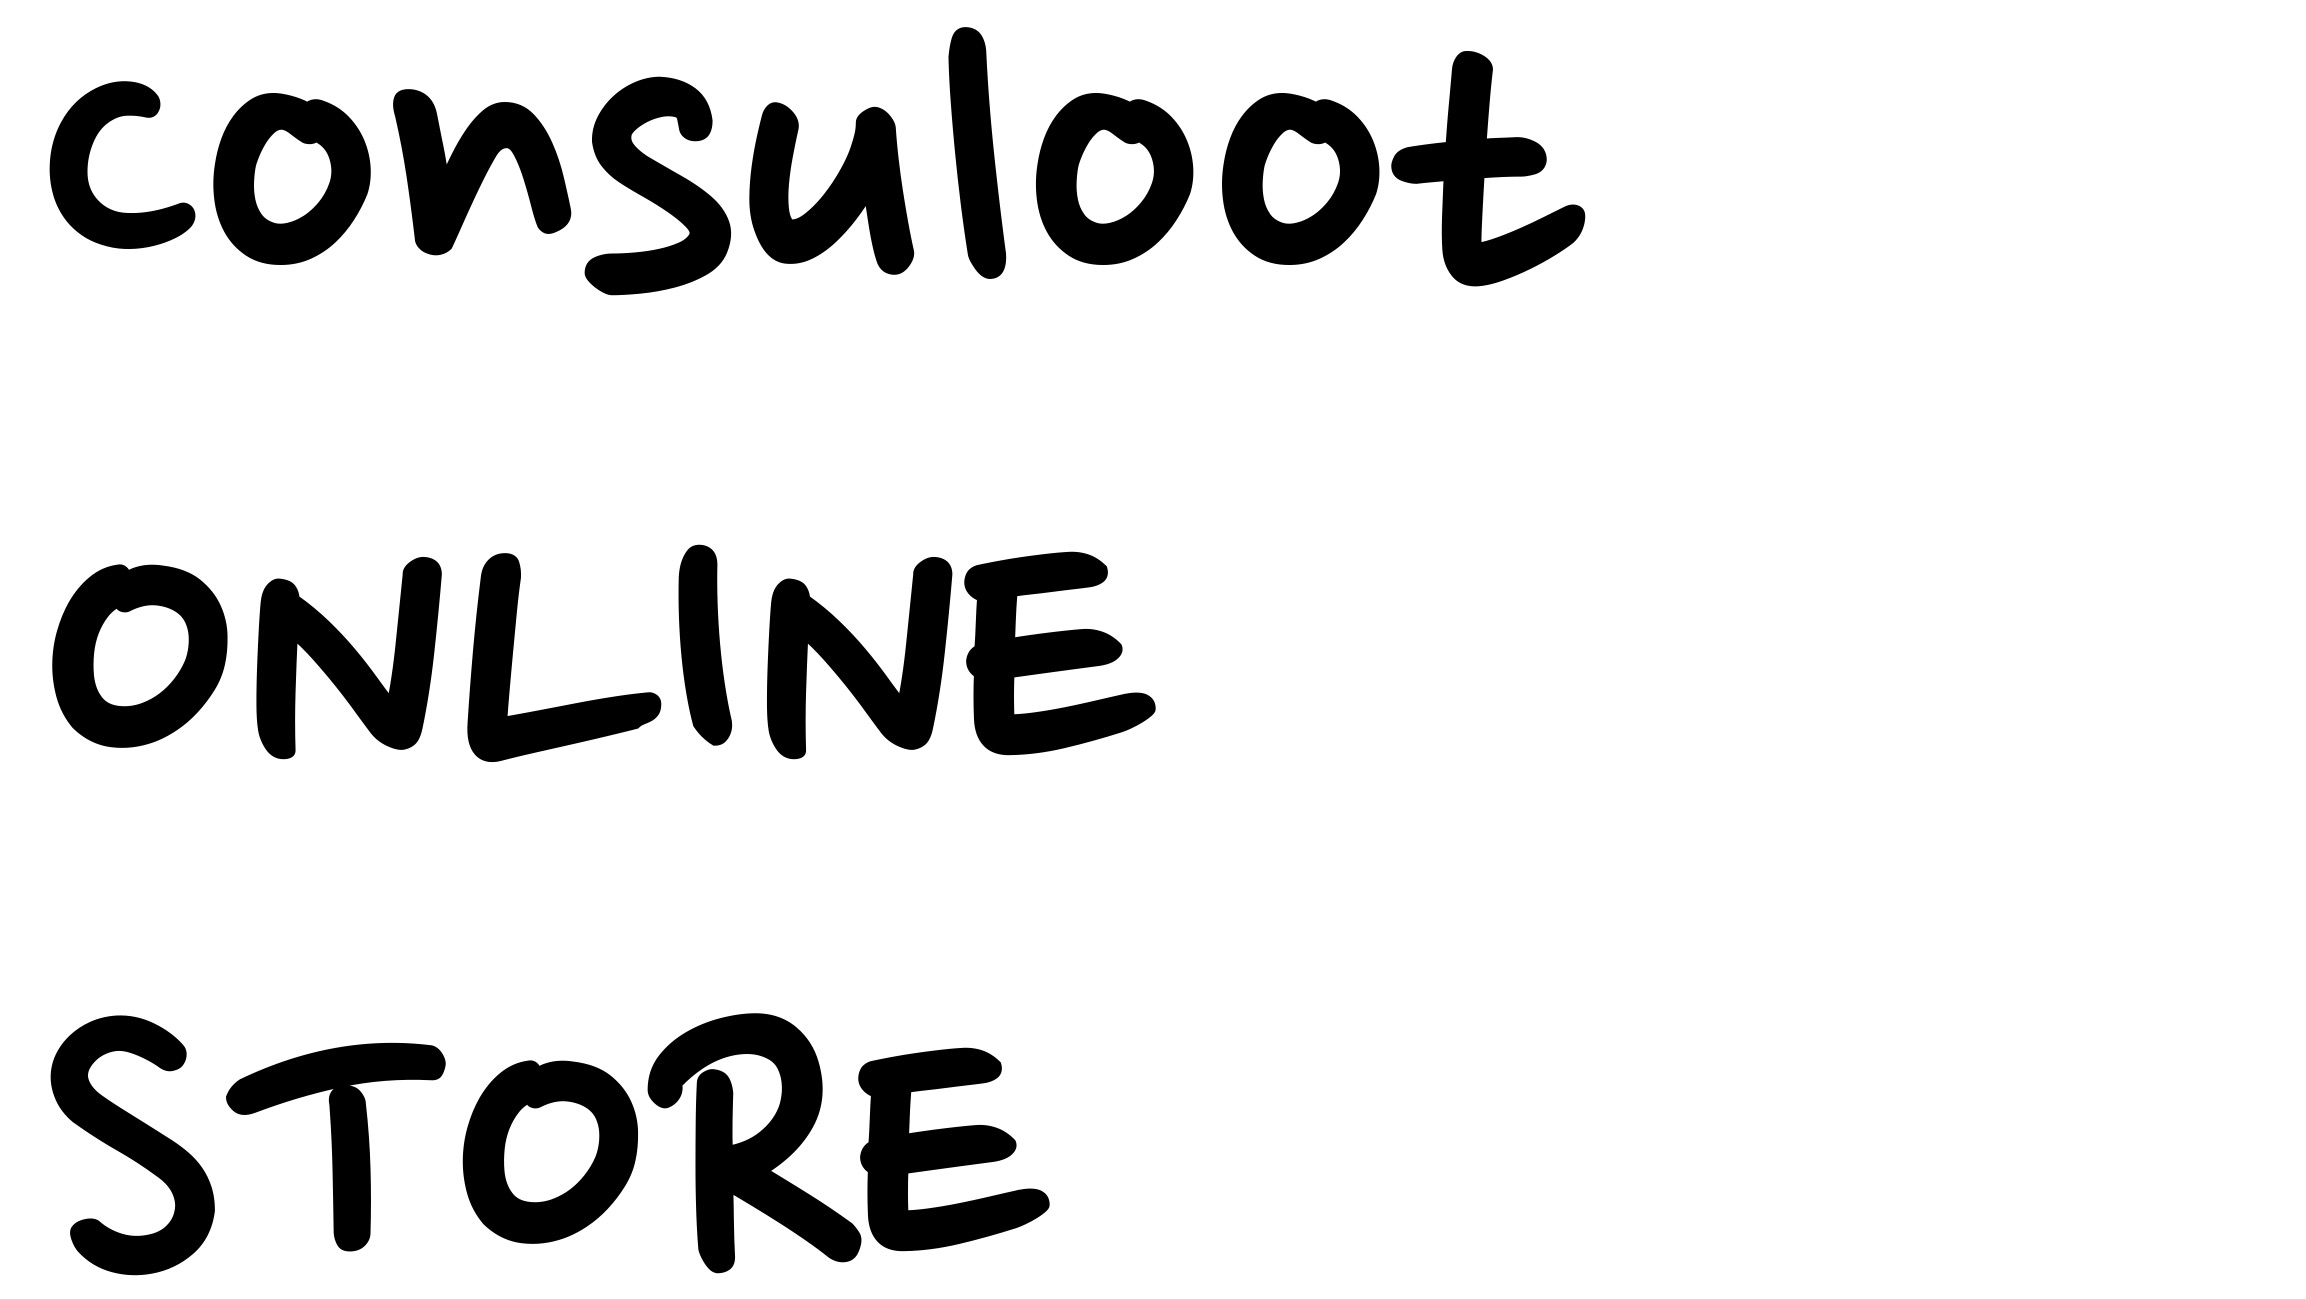 Consuloot ONLINE STORE